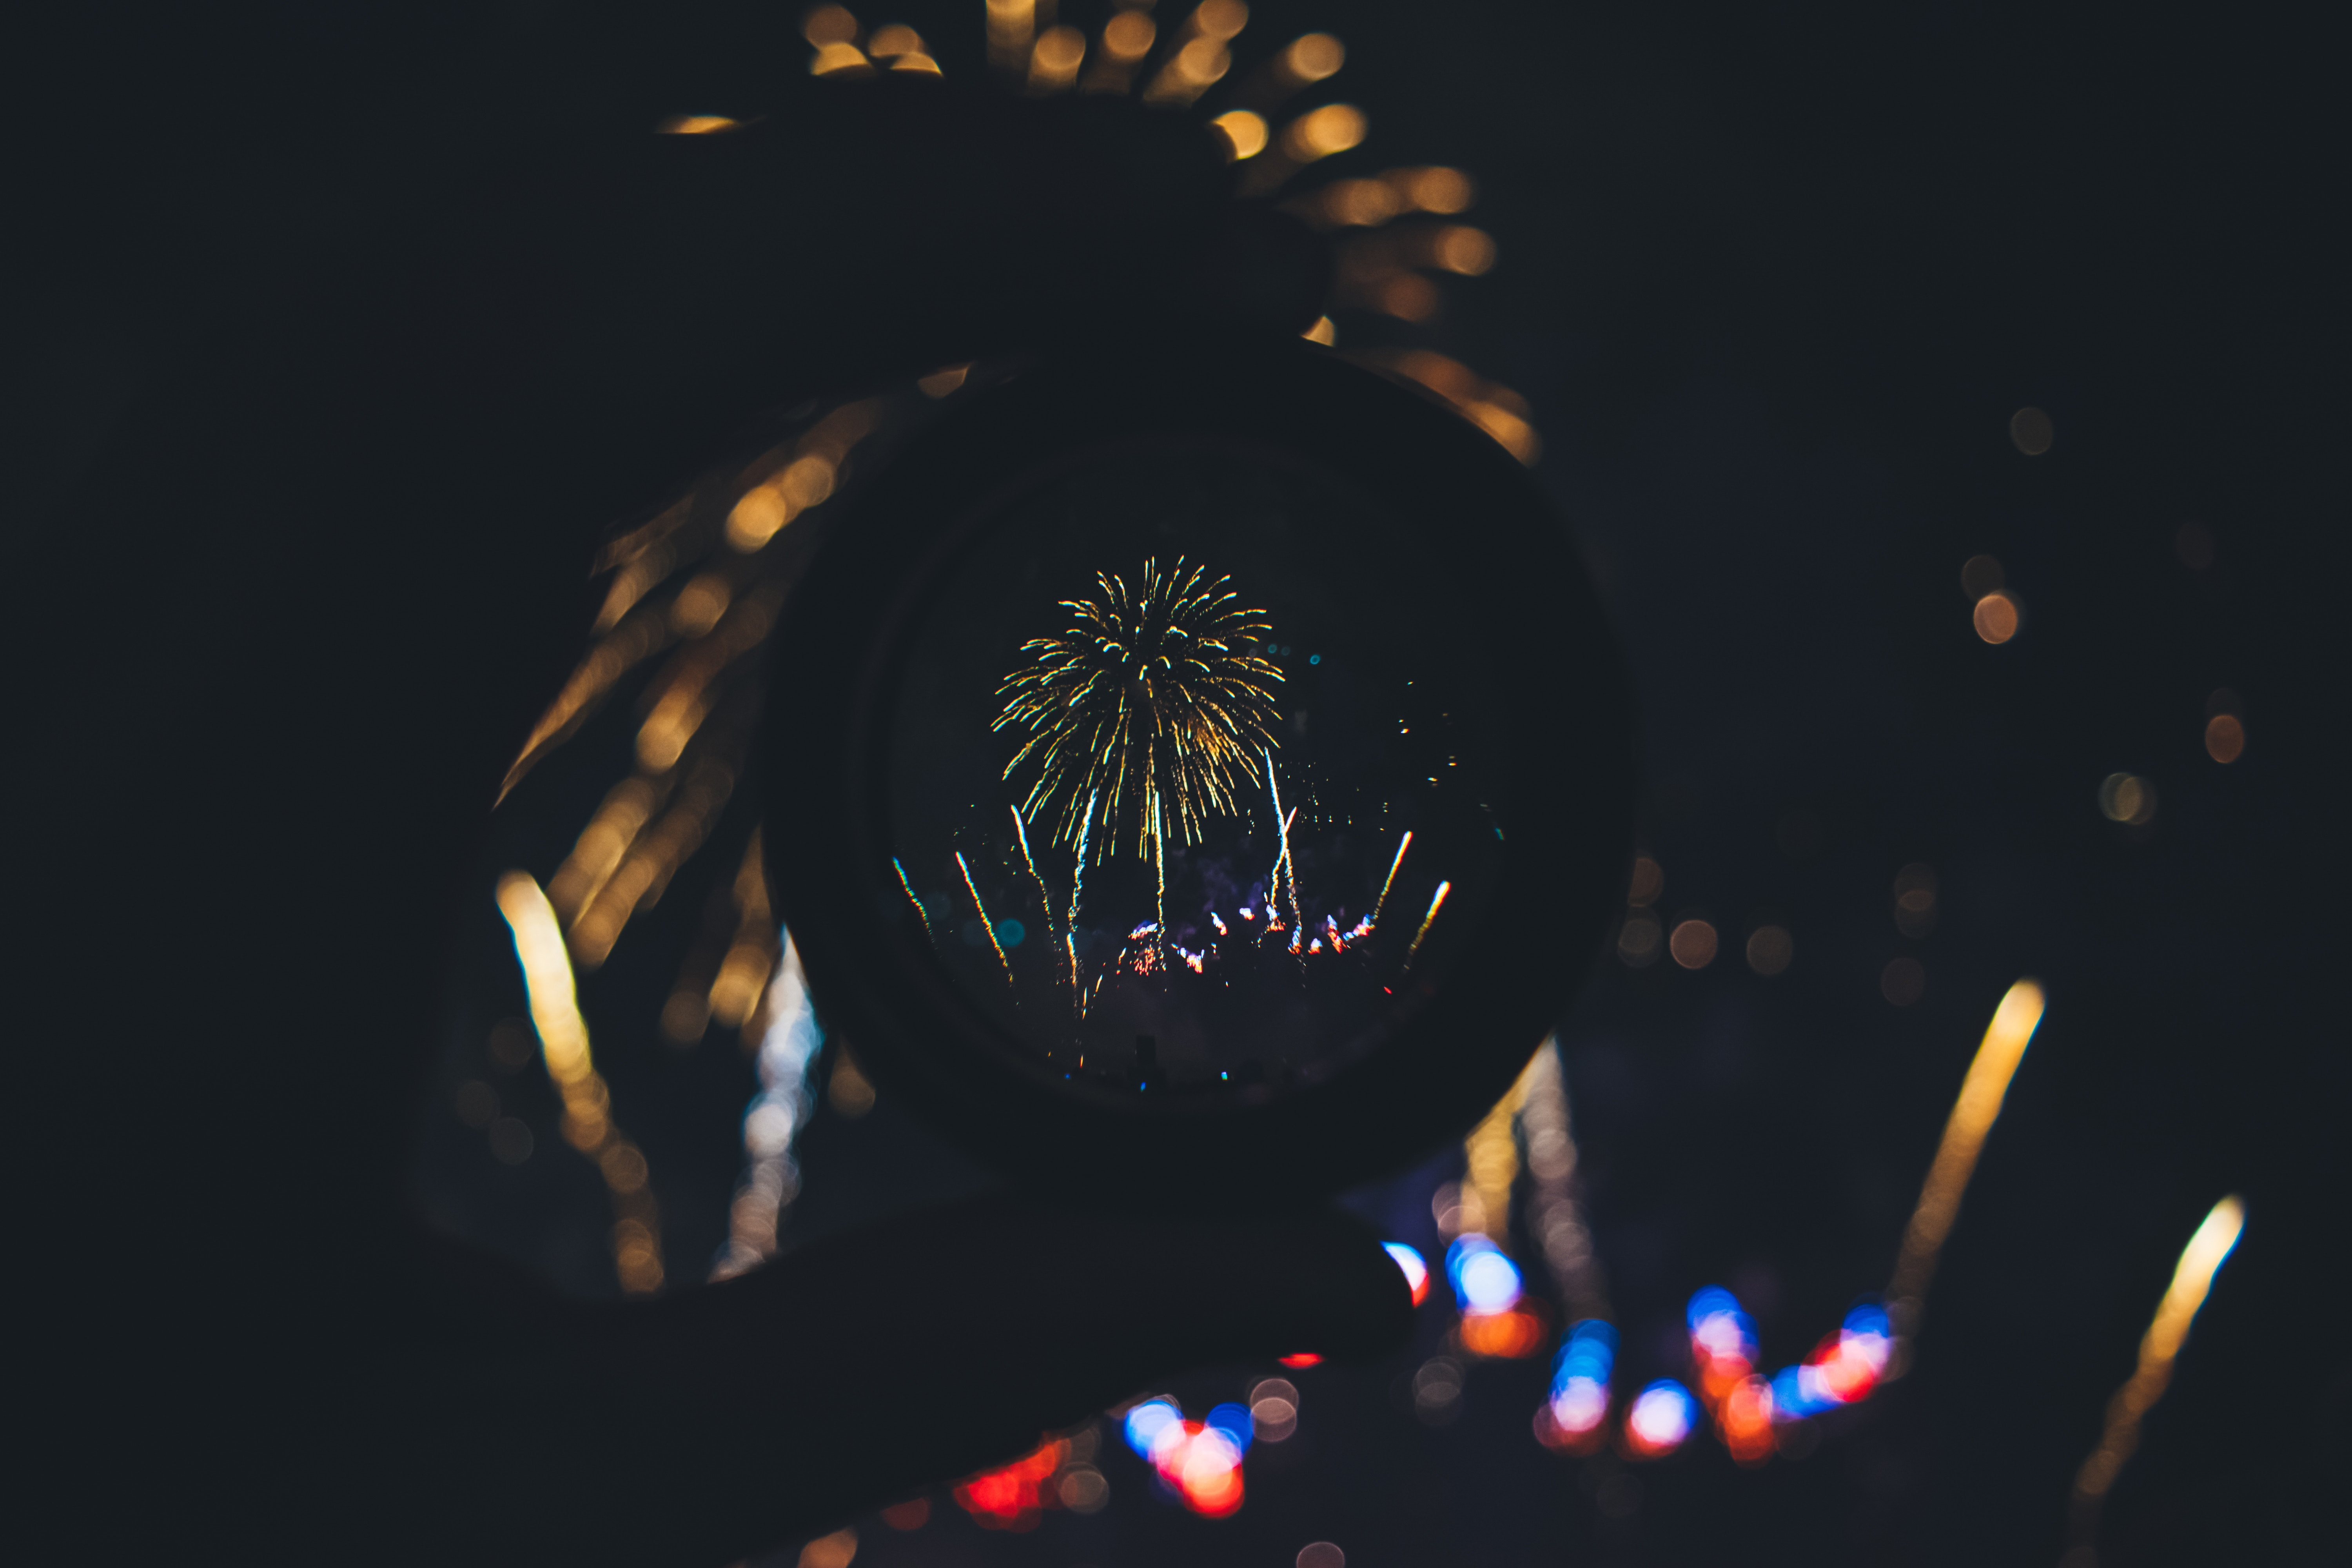 113303 Screensavers and Wallpapers Lens for phone. Download Salute, Dark, Holiday, Lens, Fireworks, Firework pictures for free